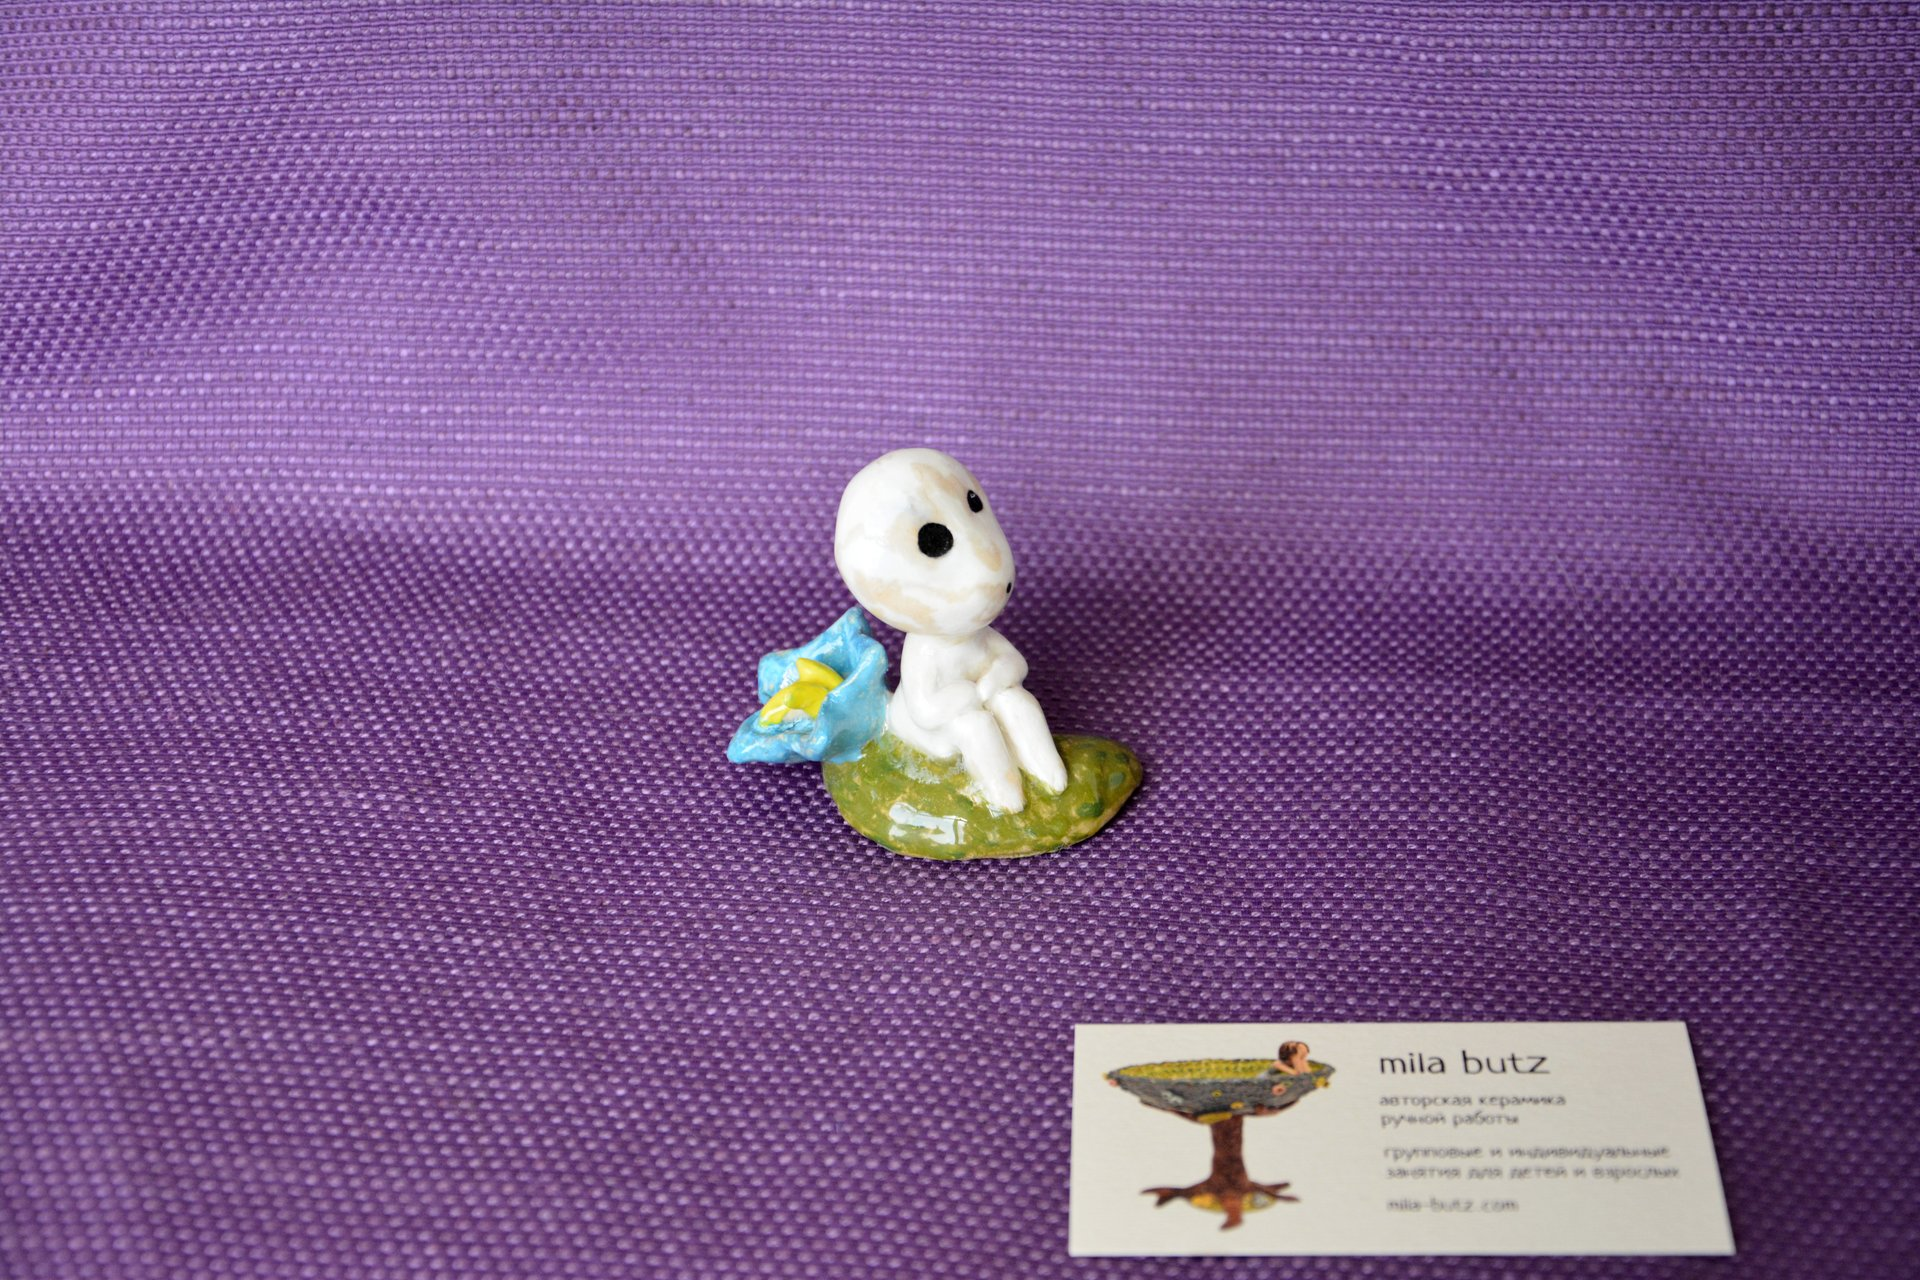 Figurine of Kodama Spirit of a tree by a flower, height - 6 cm, photo 3 of 4.